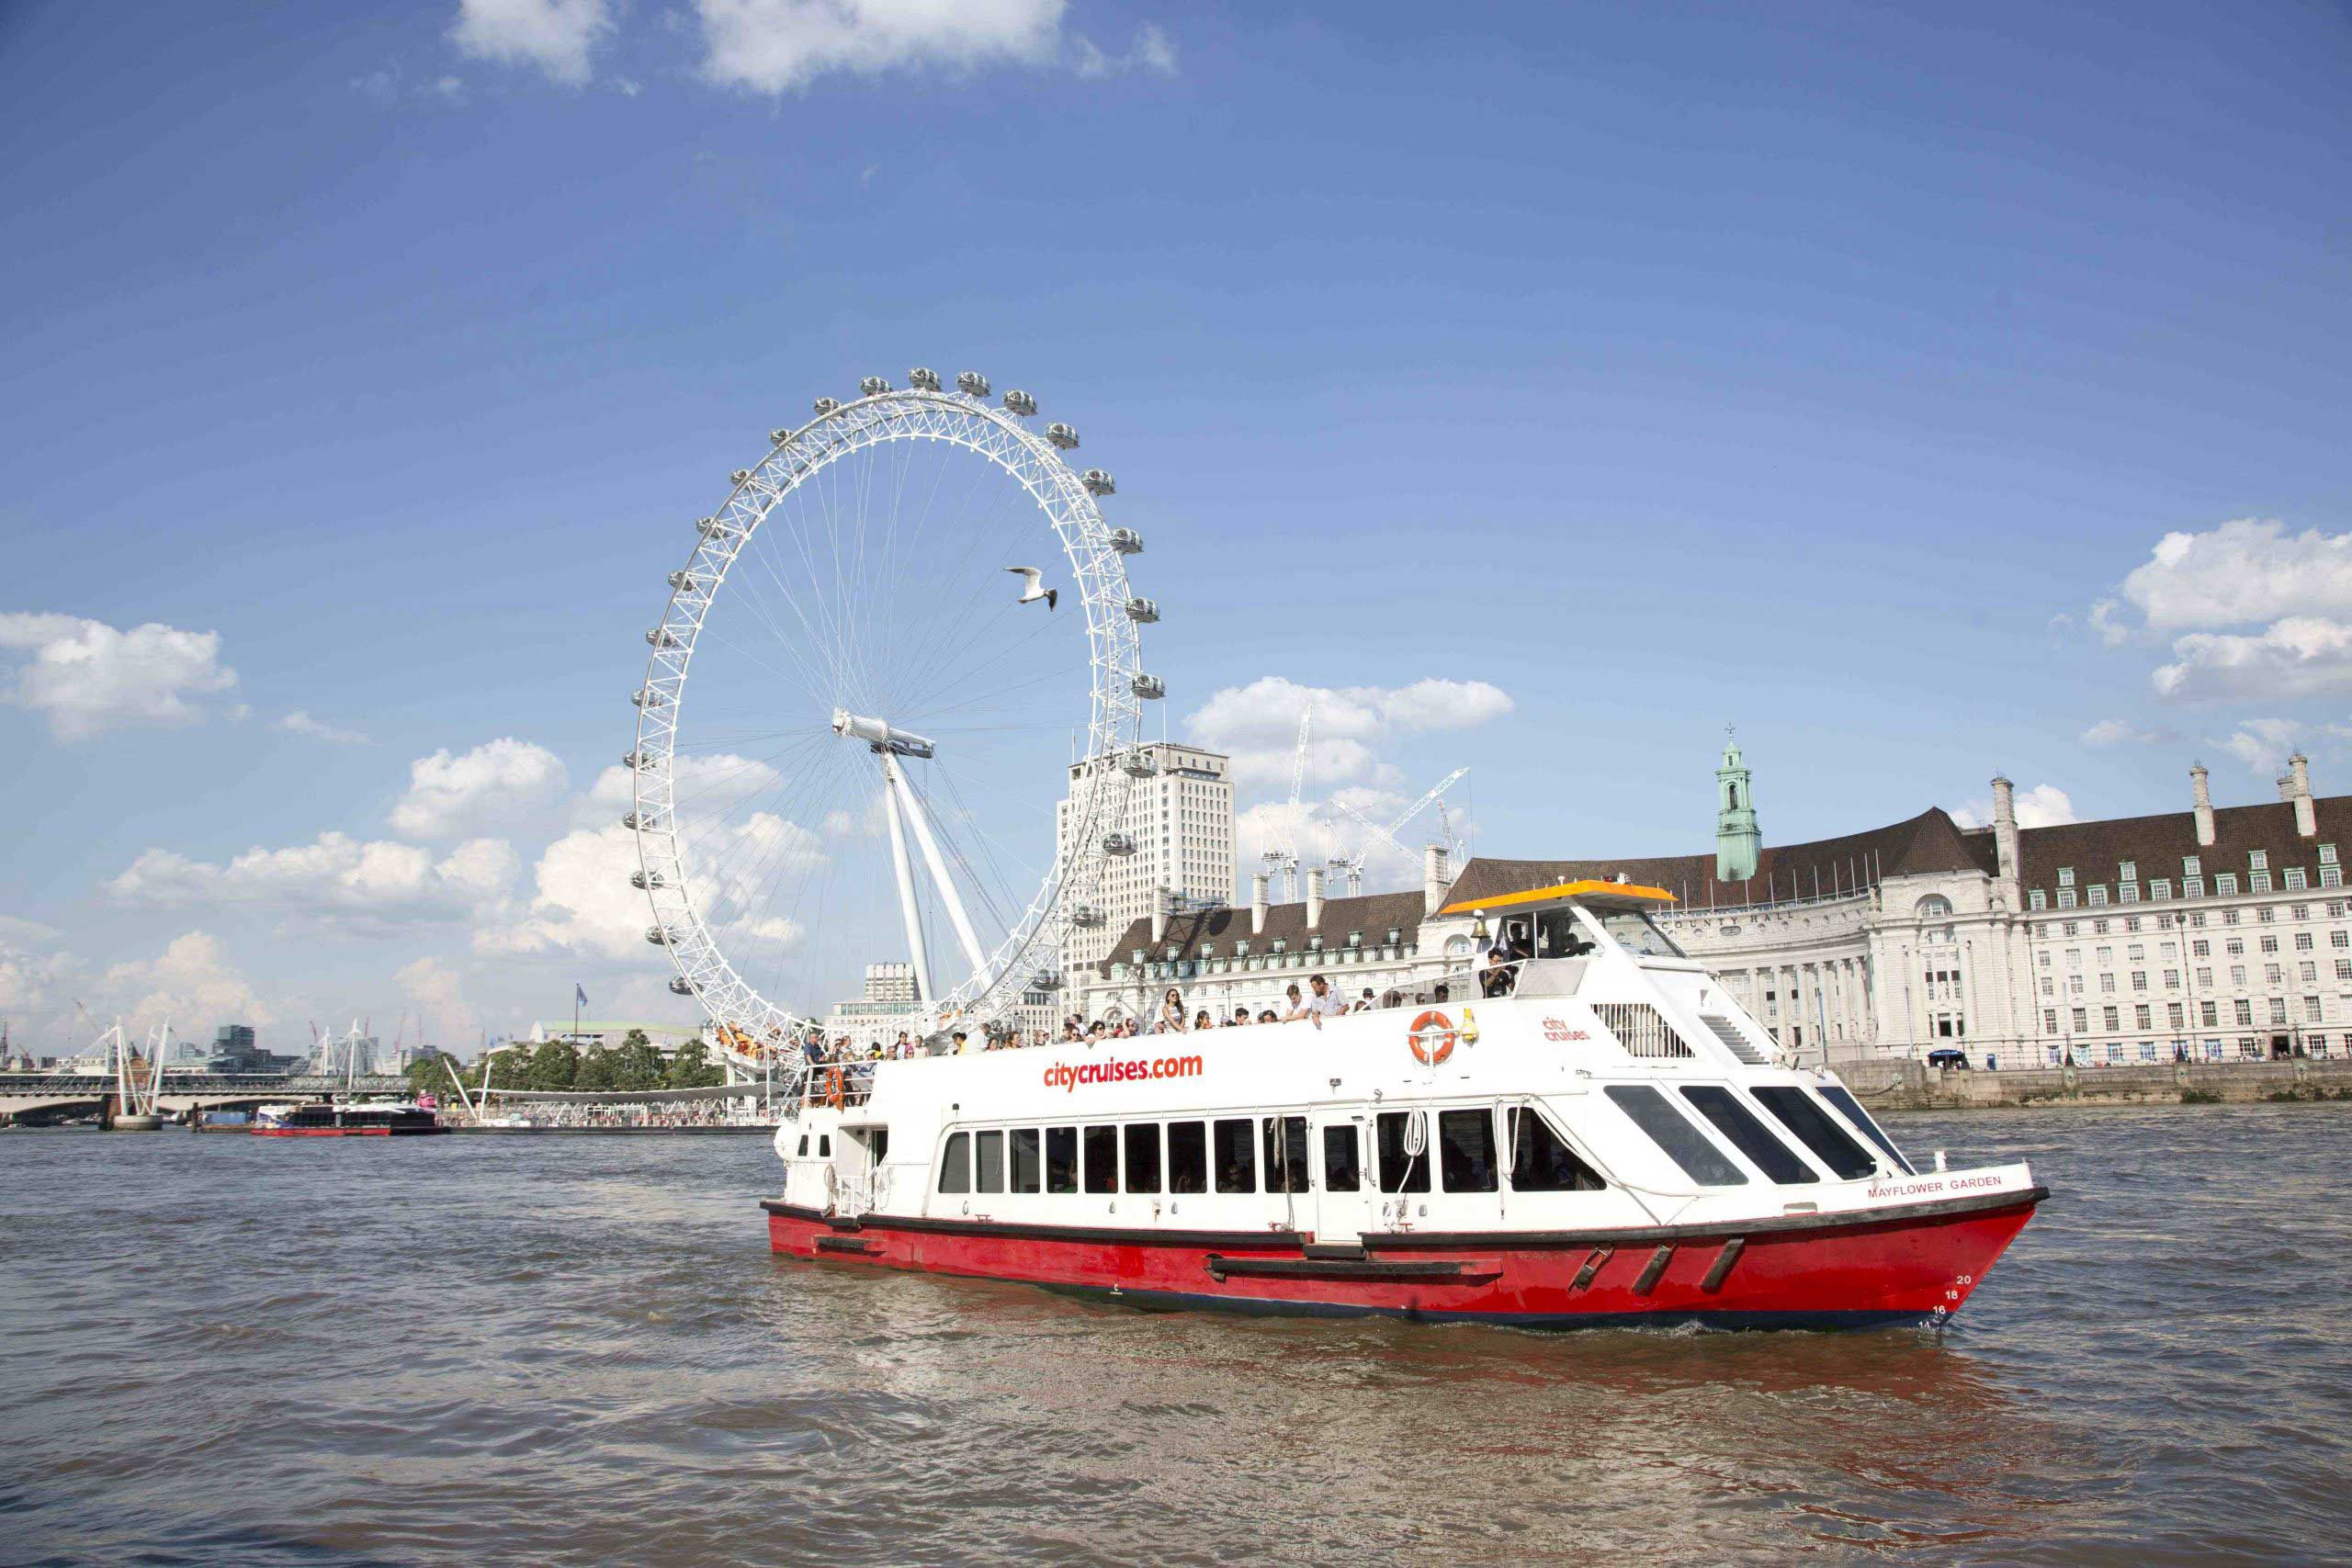 City Cruises boat with London Eye in background